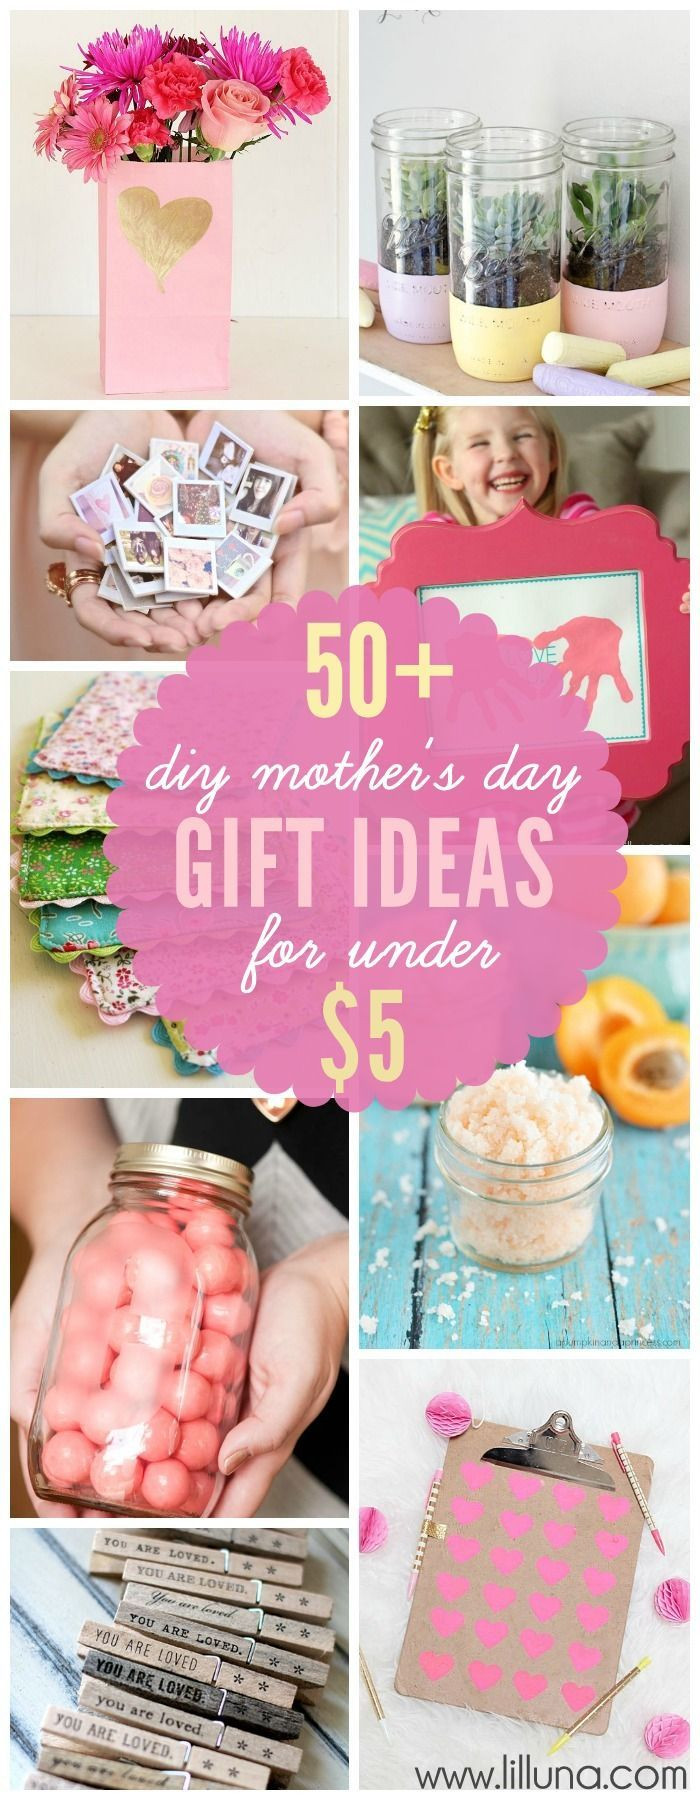 Pinterest Mothers Day Gift Ideas  50 DIY Mother s Day Gift Ideas made for under $5